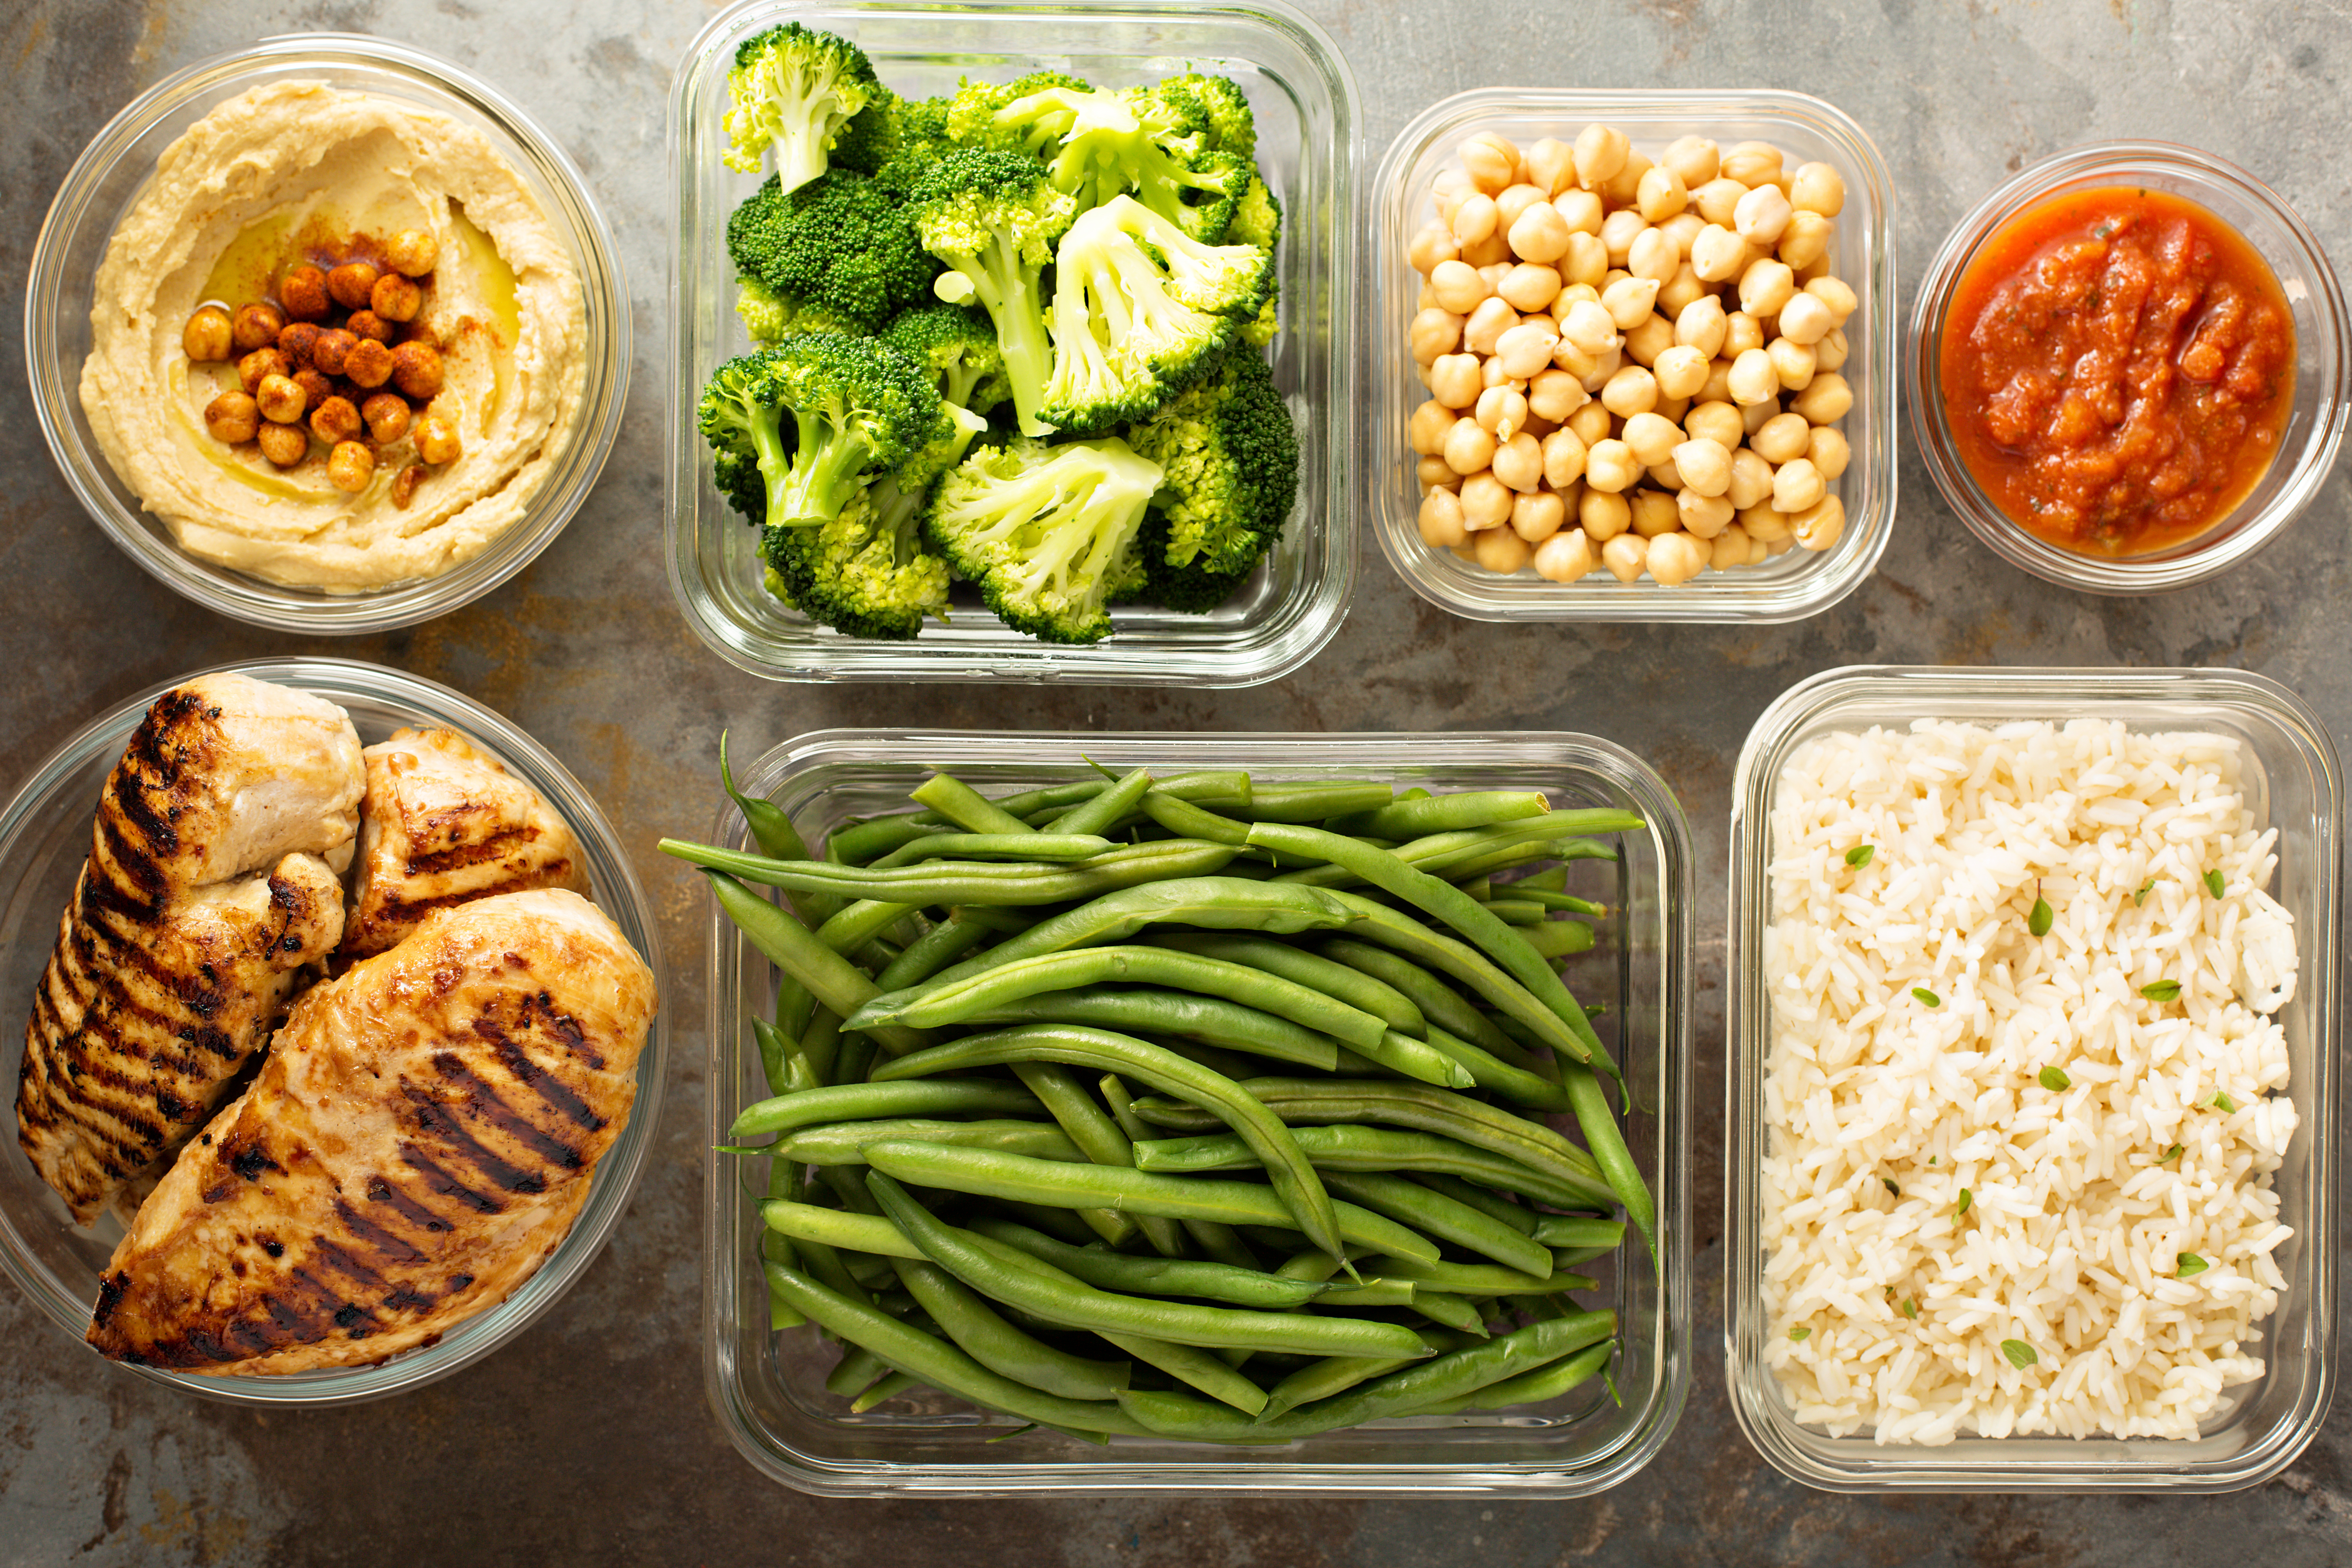 An overhead photo shows seven glass containers, some containing cooked vegetables, one containing brown rice, and another containing grilled chicken.